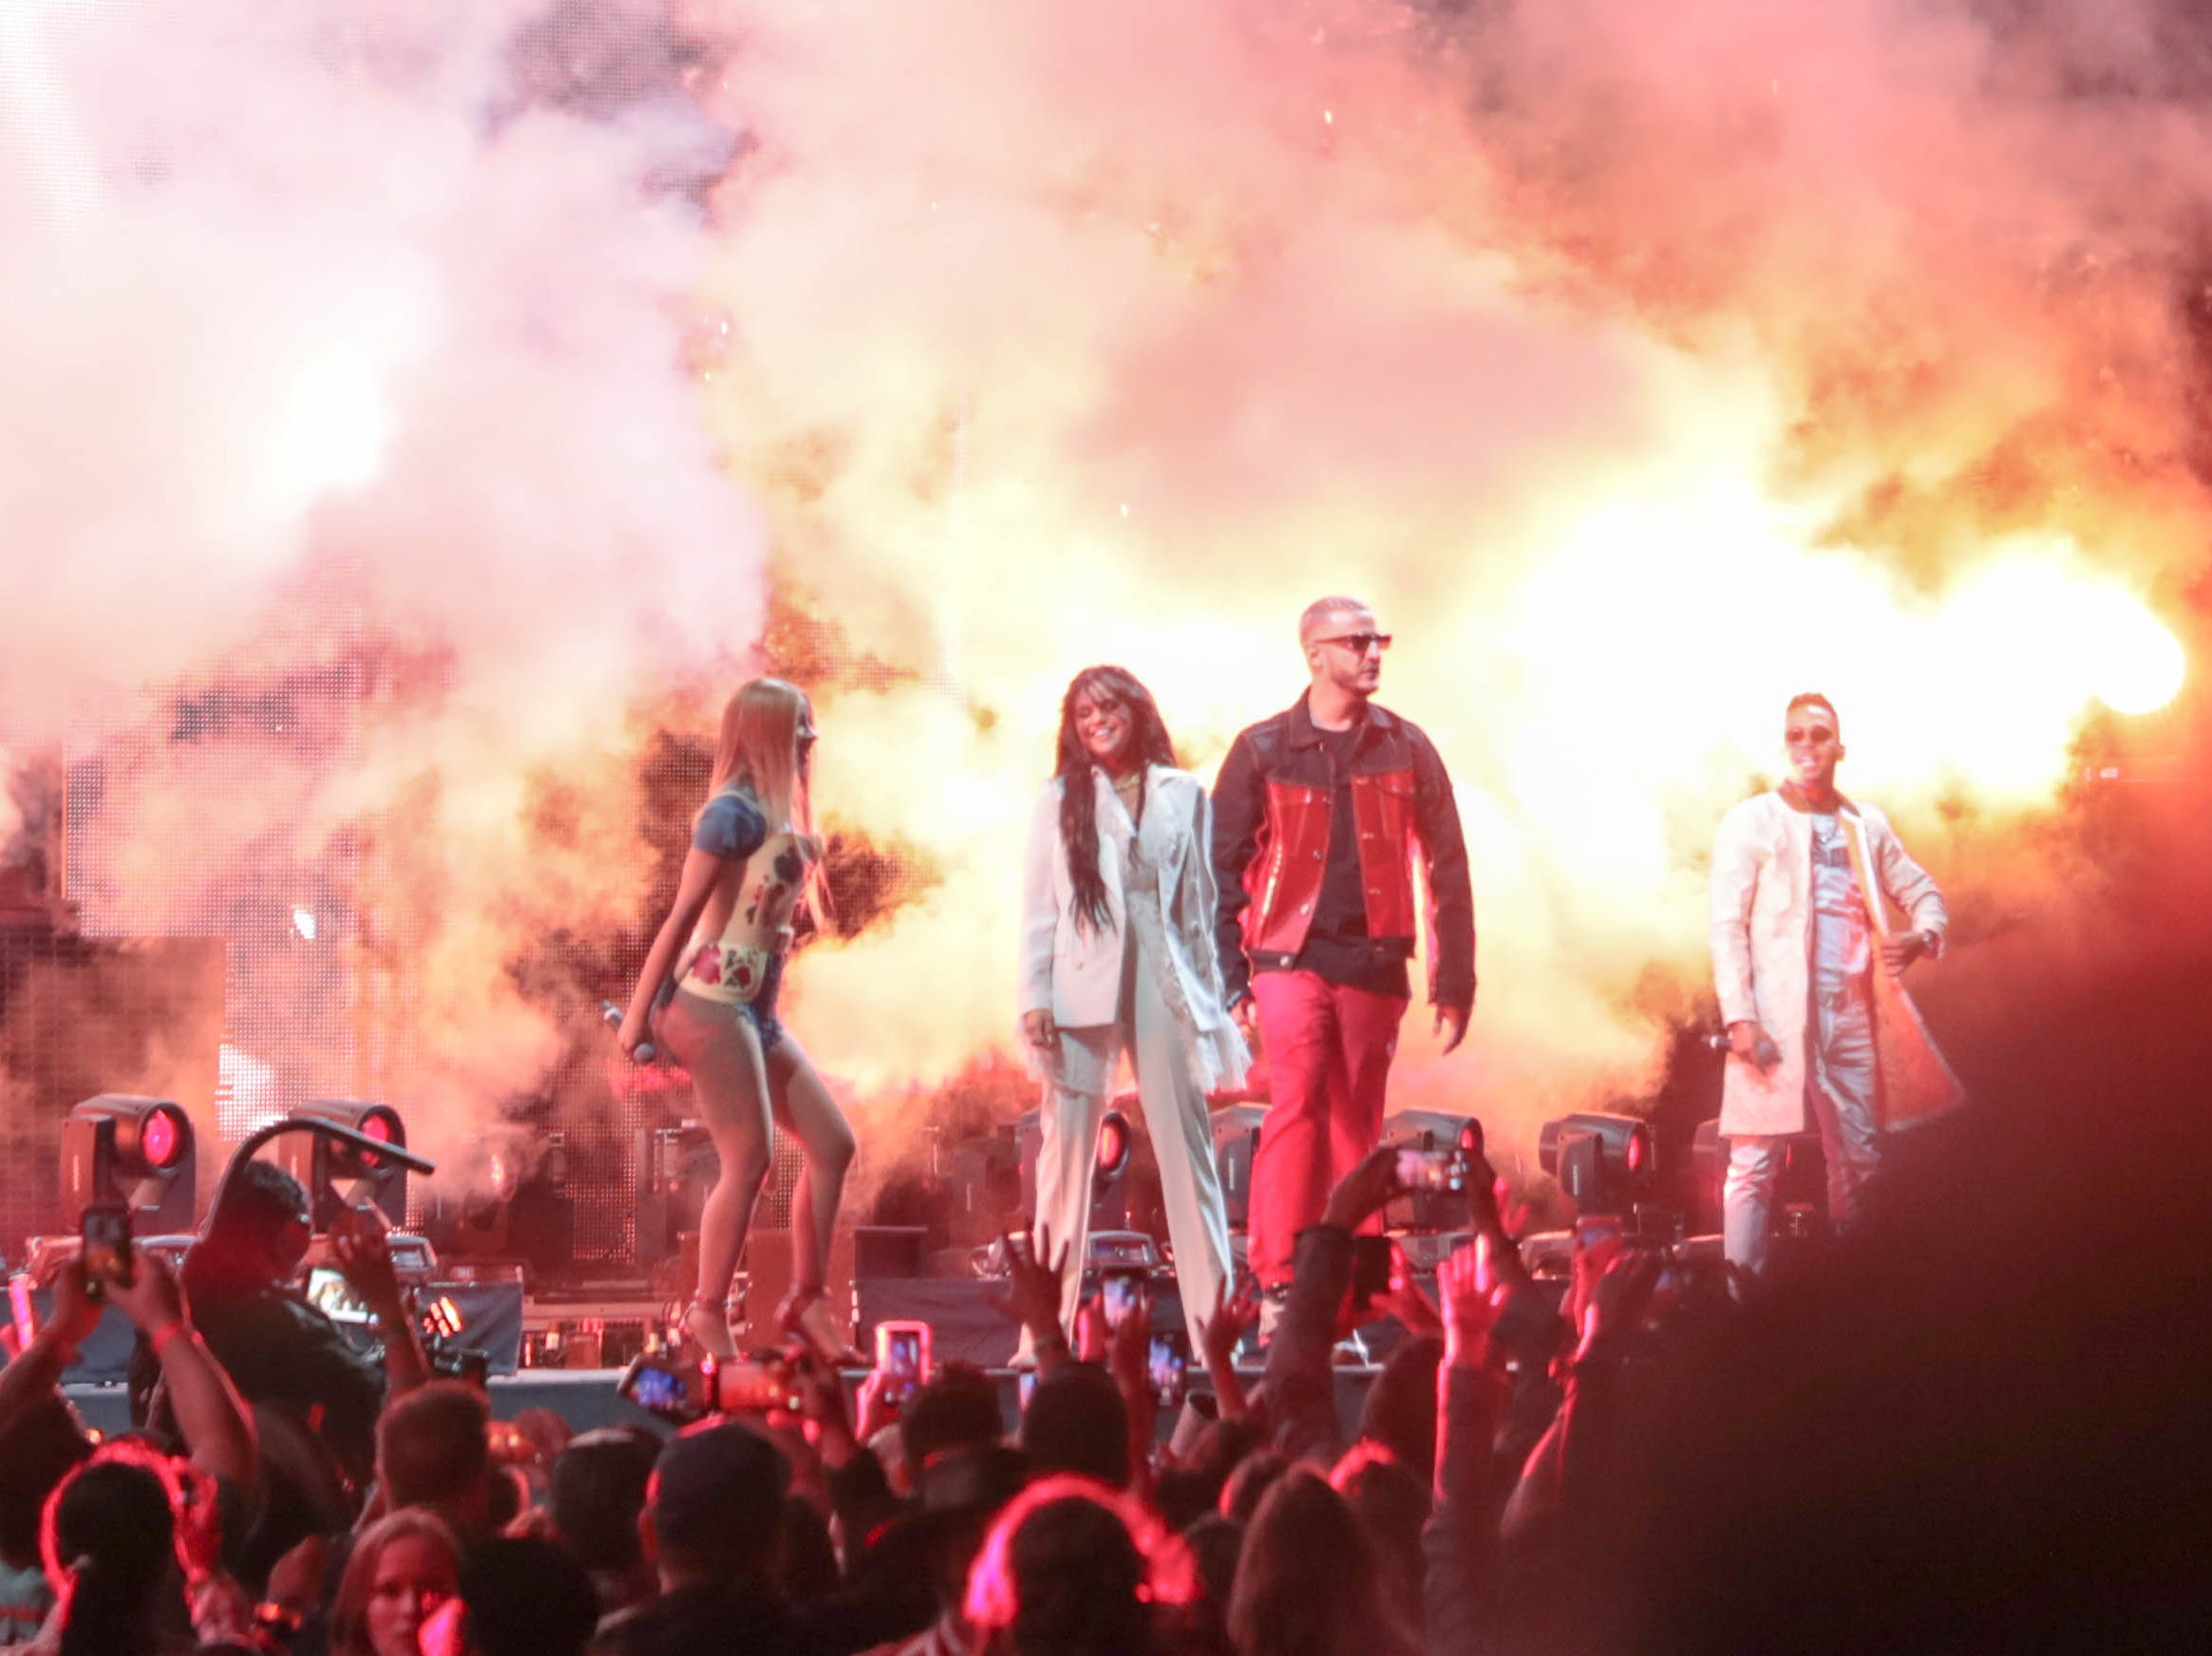 Cardi B, Selena Gomez, DJ Snake and Ozuna perform at Coachella Valley Music and Arts Festival in Indio, Calif on Friday, April 12, 2019.